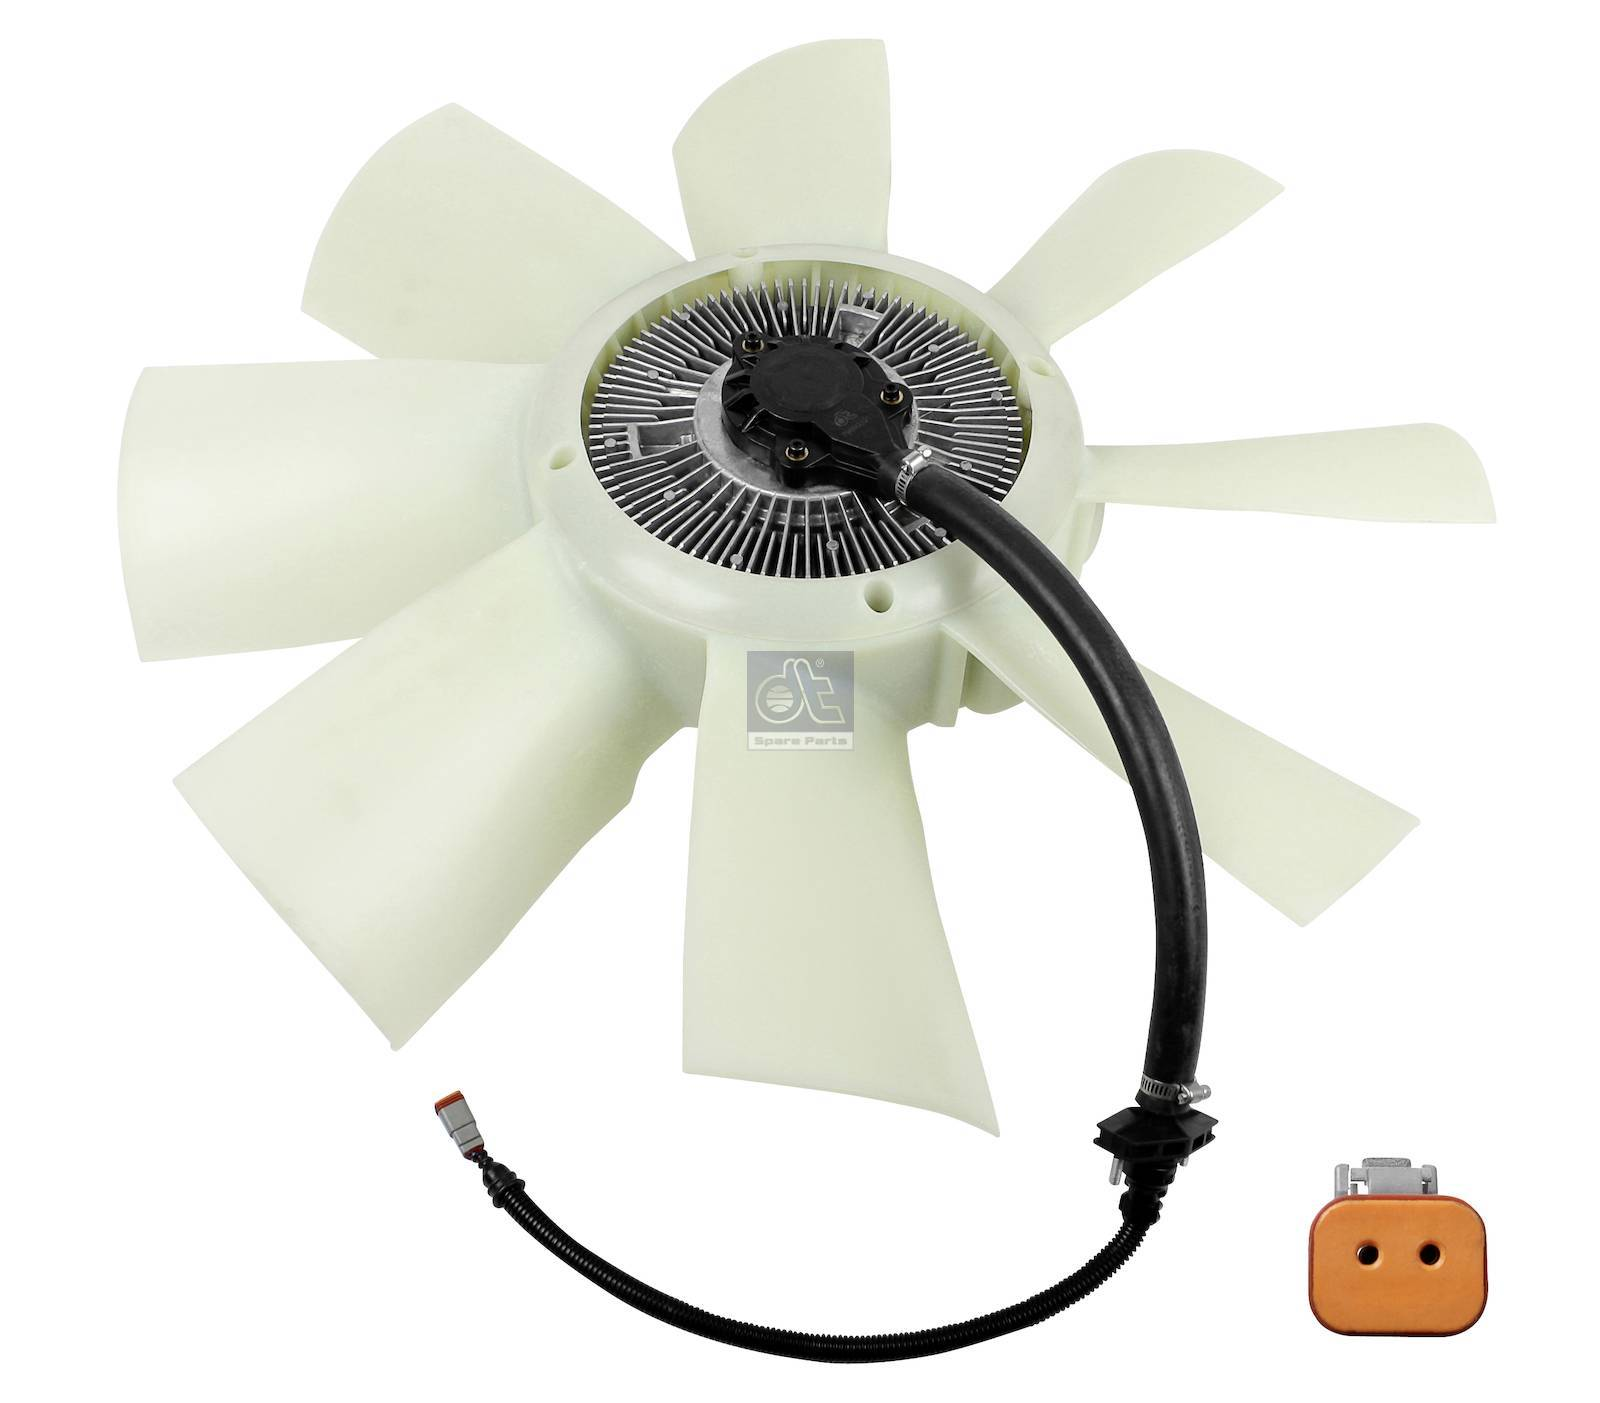 Fan with clutch, electrical